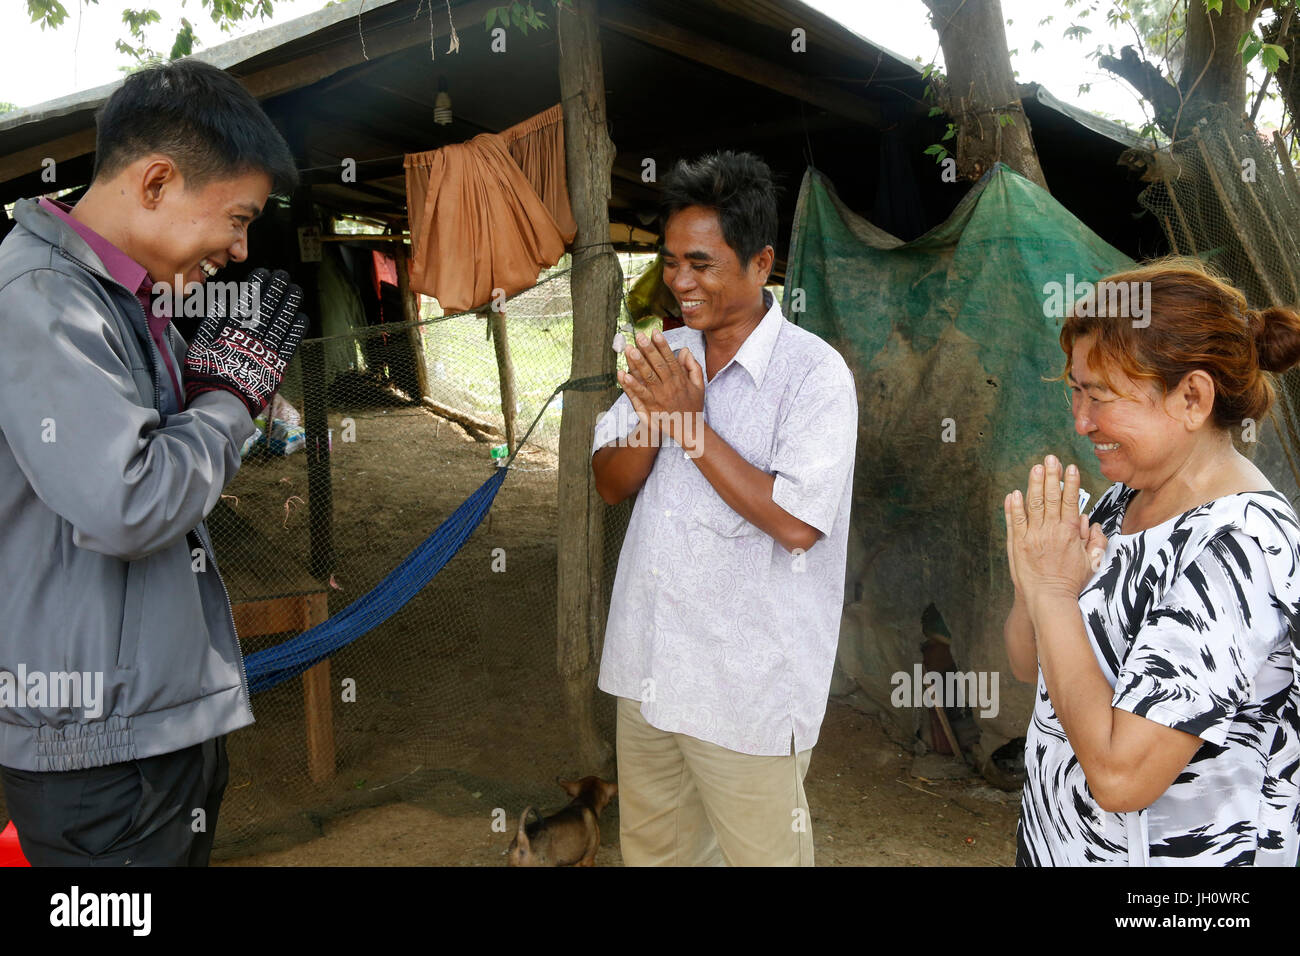 AMK microfinance employee greeting clients. Cambodia. - Stock Image